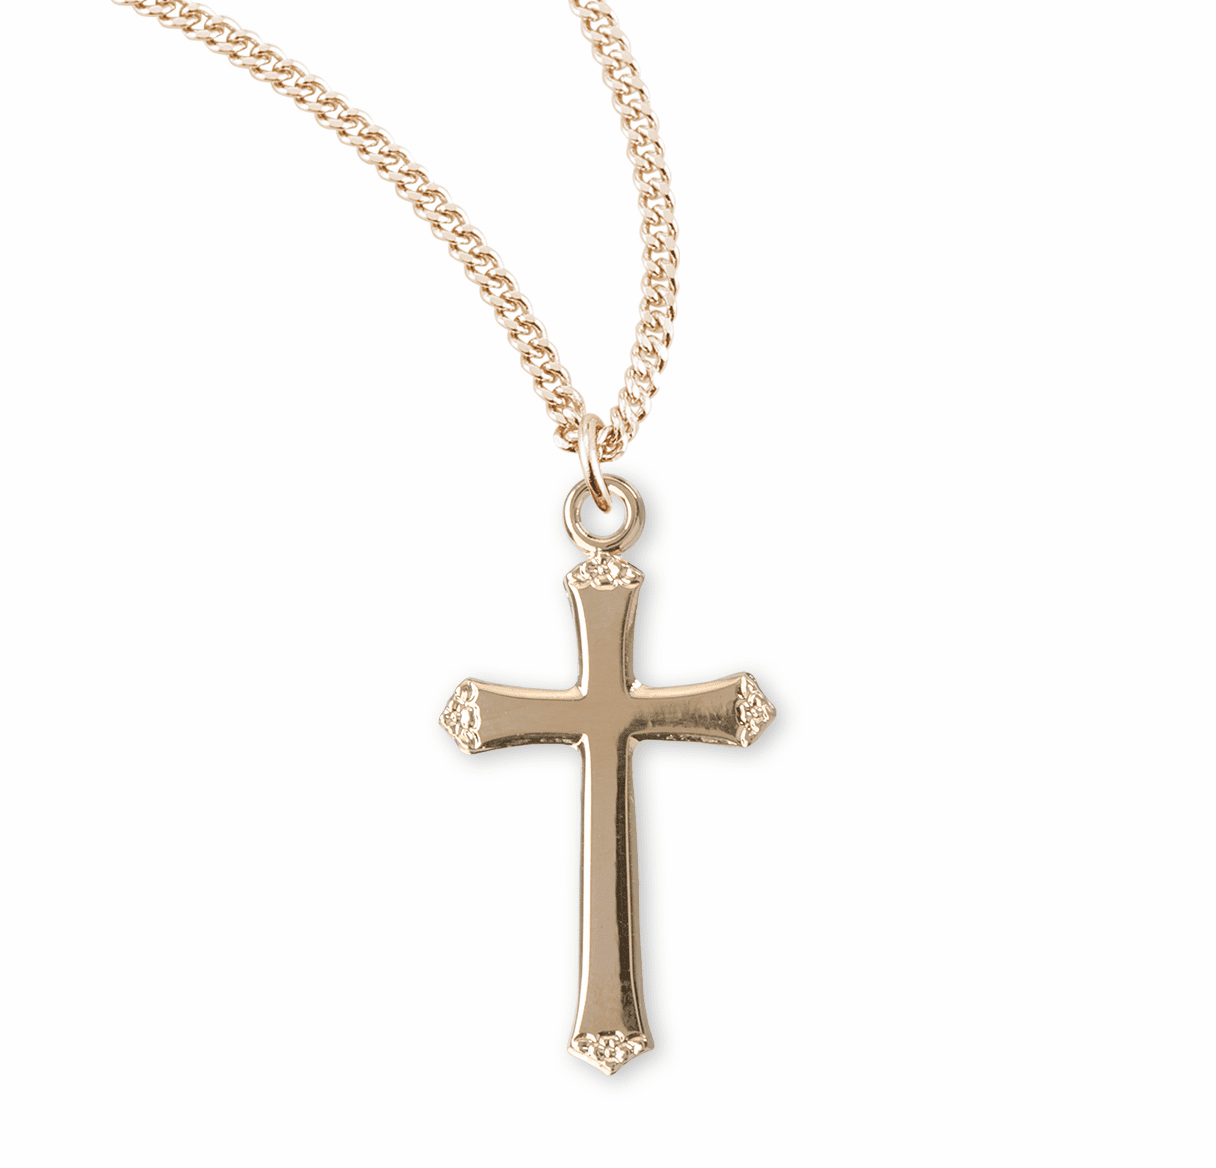 HMH Religious Gold Over Sterling Silver Flower Tipped Cross Necklace